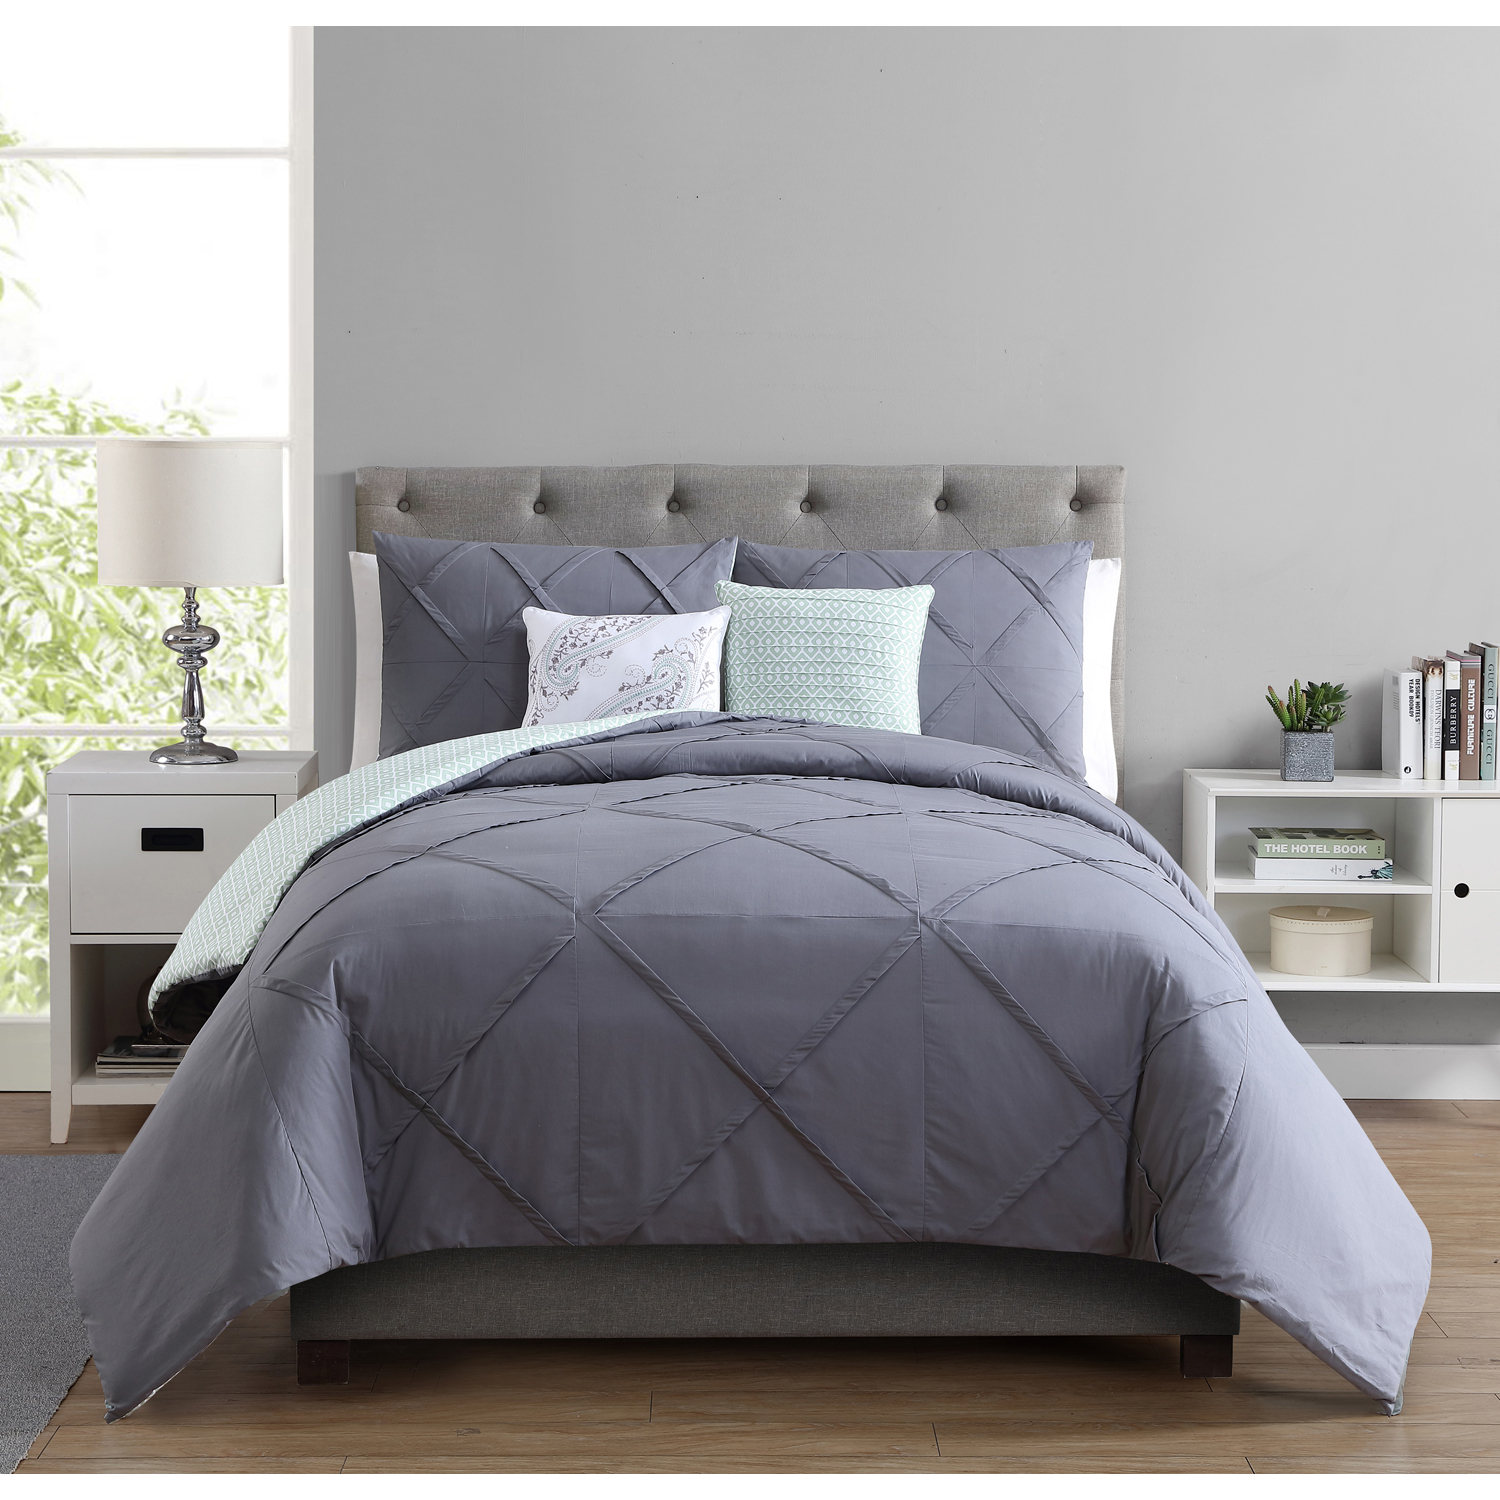 Better Homes and Gardens Pinched Design 5-Piece Reversible Cotton Bedding Comforter Set, Grey, Queen